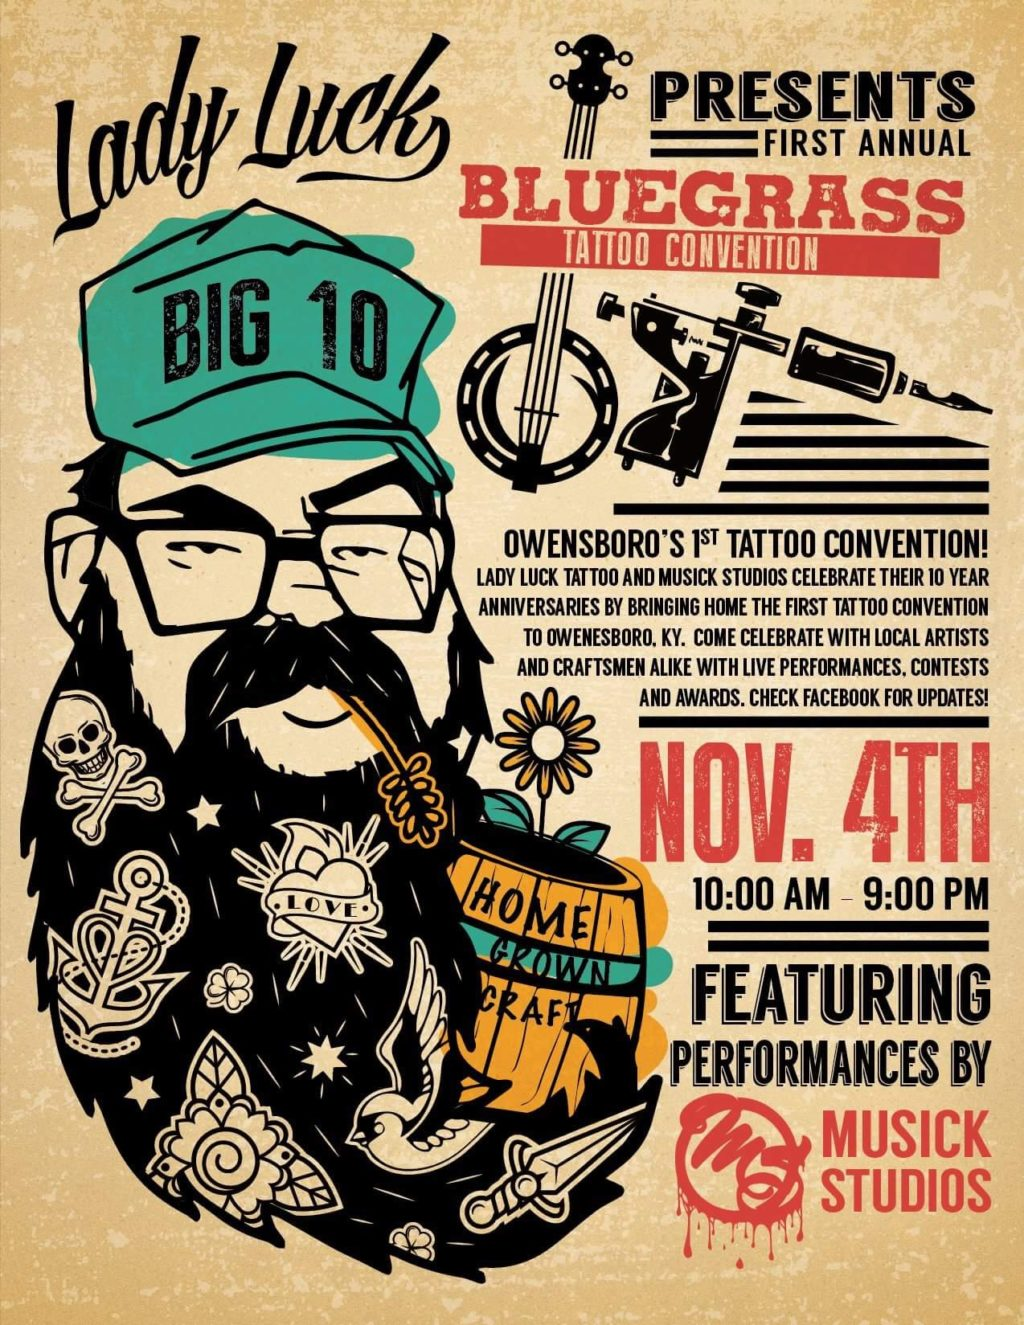 Bluegrass Tattoo Convention presented by Lady Luck Tattoo Studio and Musick Studio